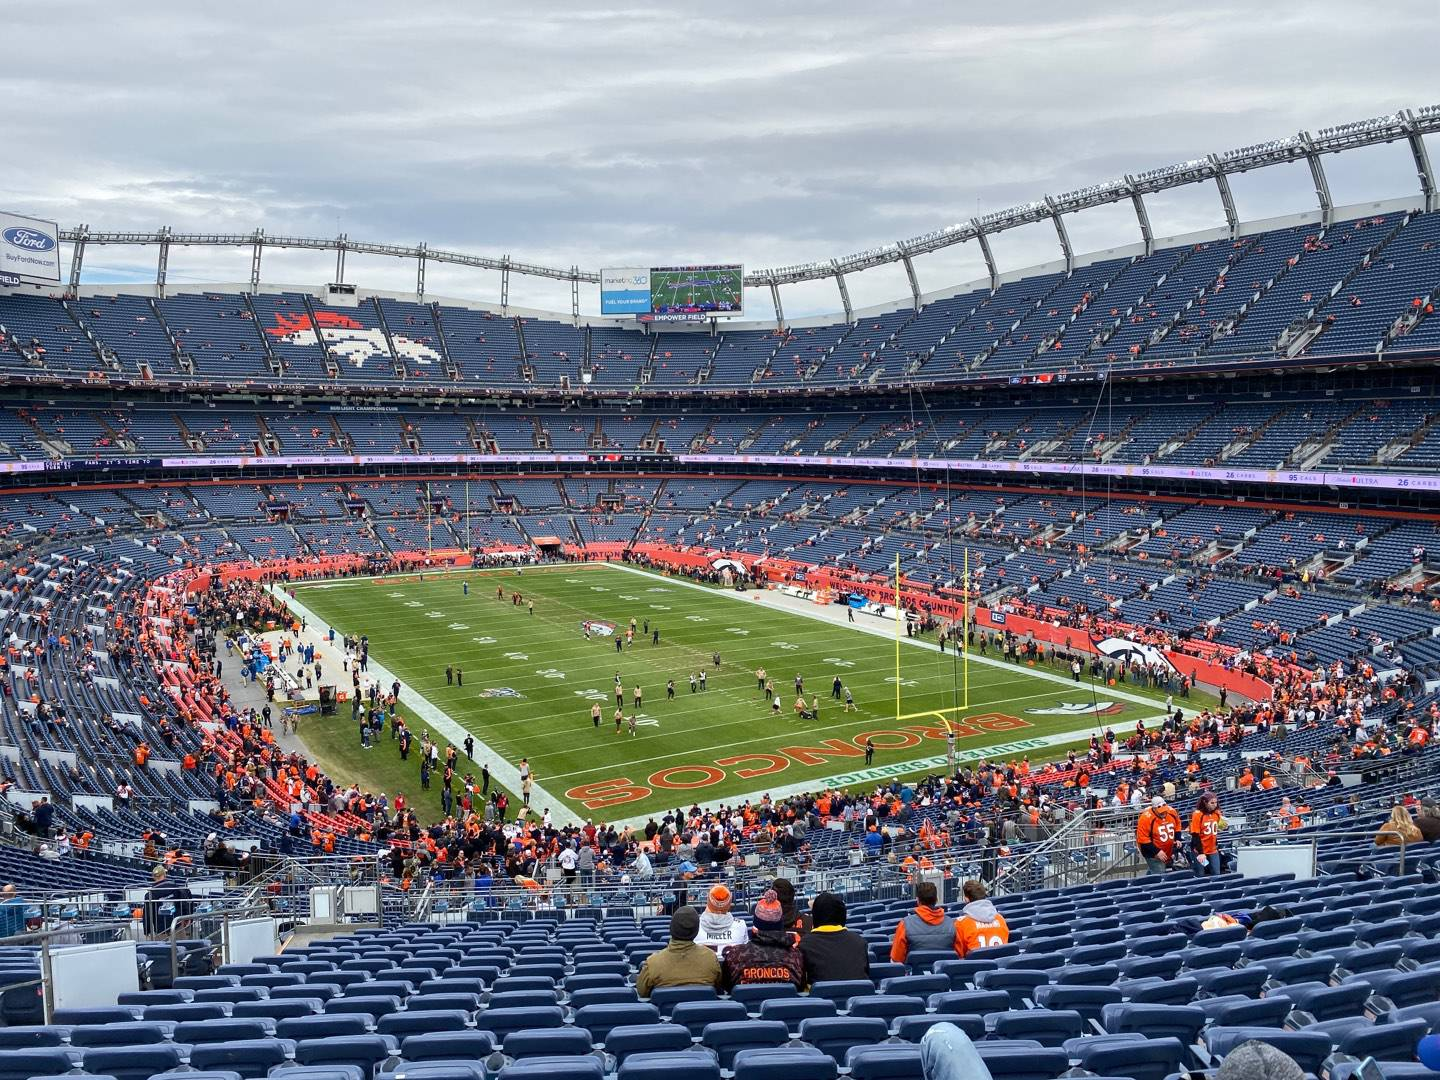 Empower Field at Mile High Stadium Section 235 Row 22 Seat 20